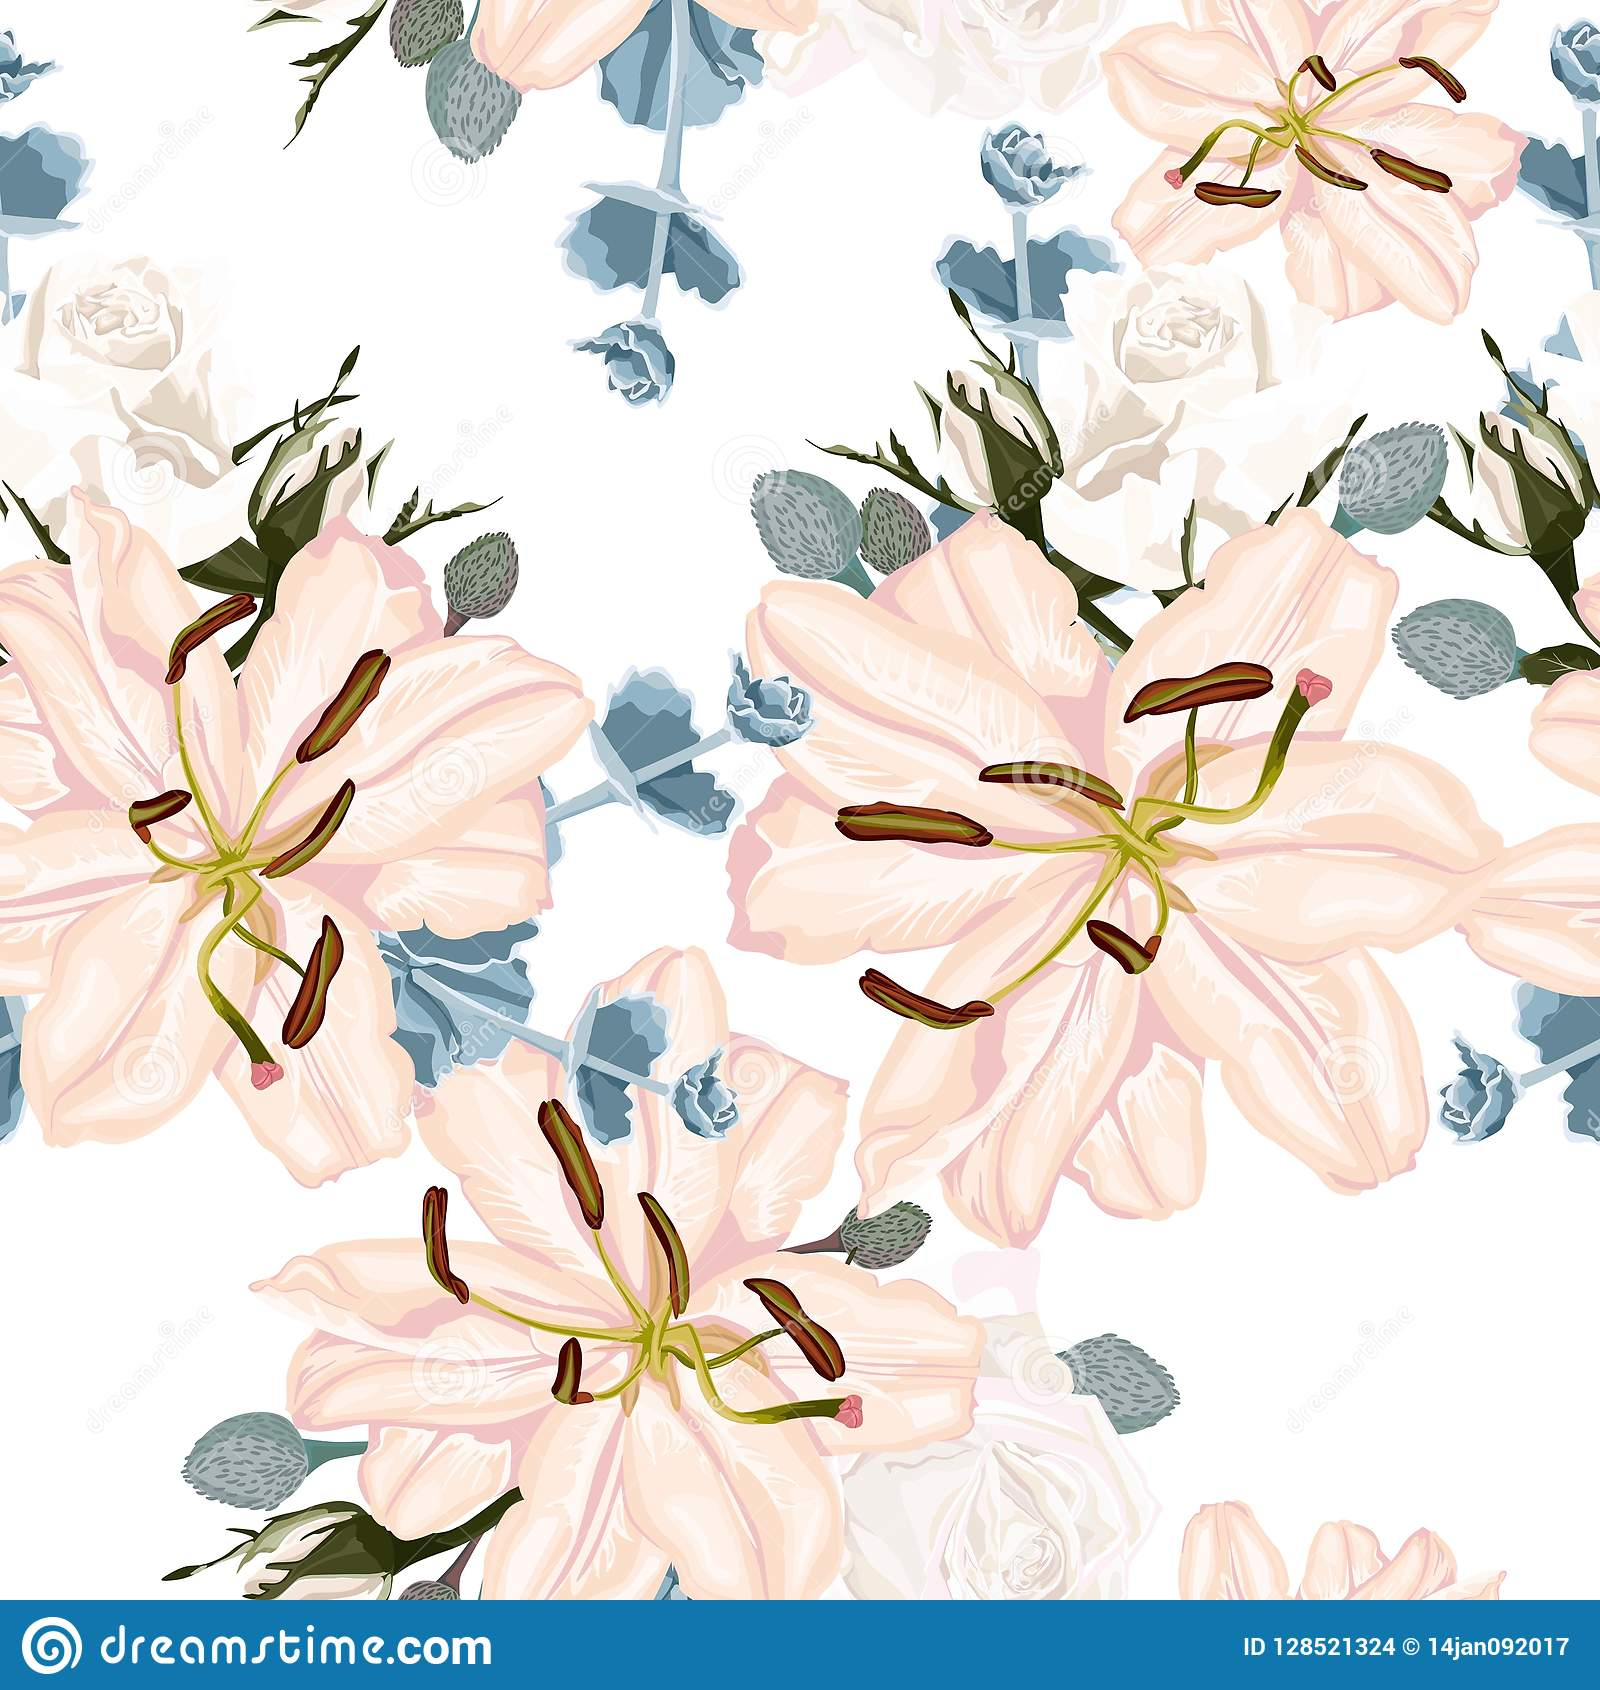 Vector Seamless Floral Pattern With Retro Flowers Wallpaper With Lily And White Roses Stock Illustration Illustration Of Flowers Elegant 128521324